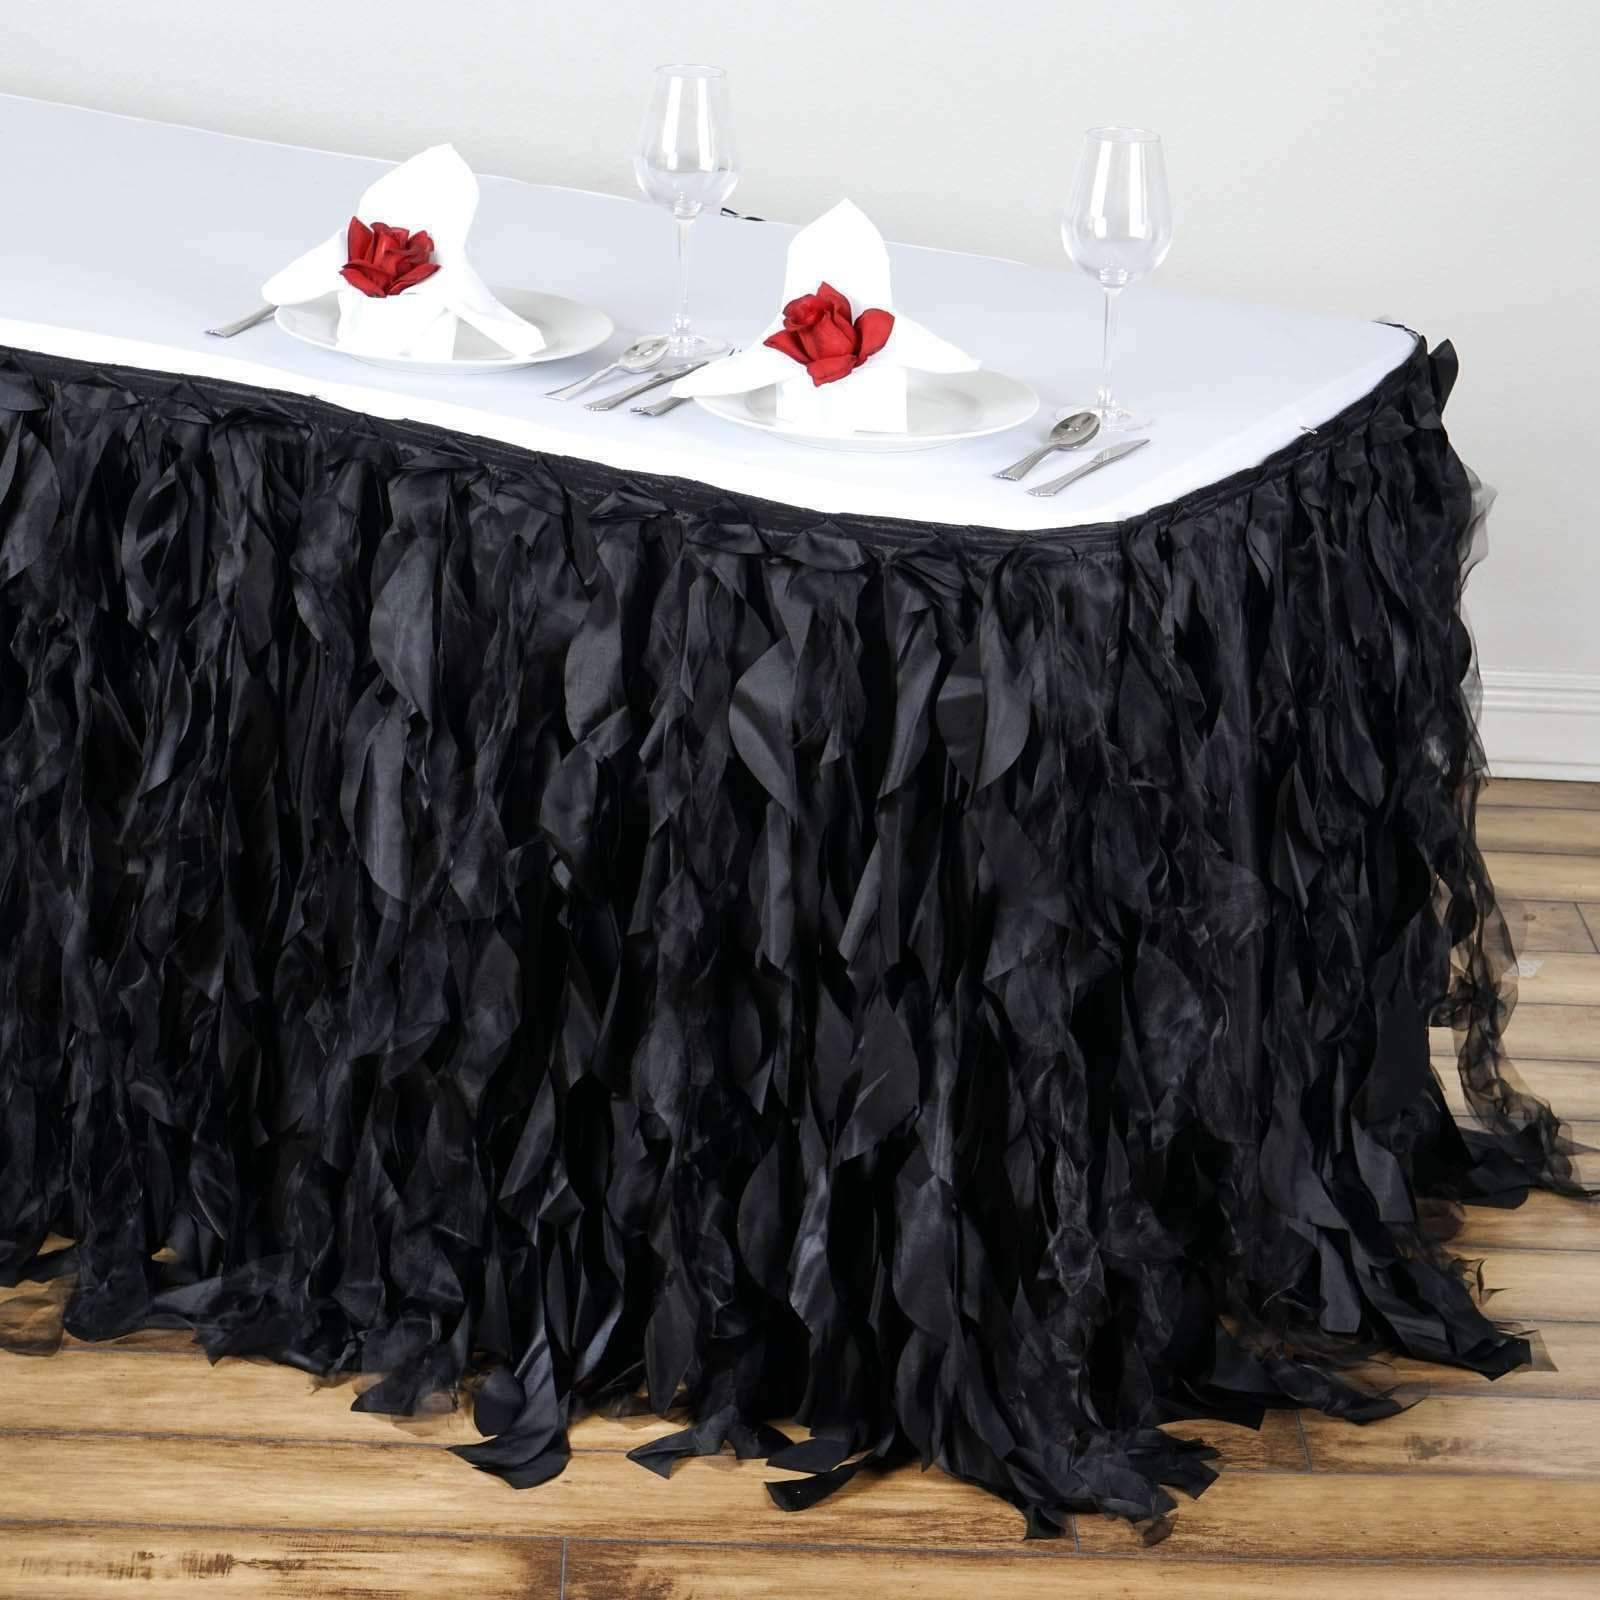 17 Ft Long x 29  Tall Curly Willow Taffeta Table Skirts Wedding Birthday Party